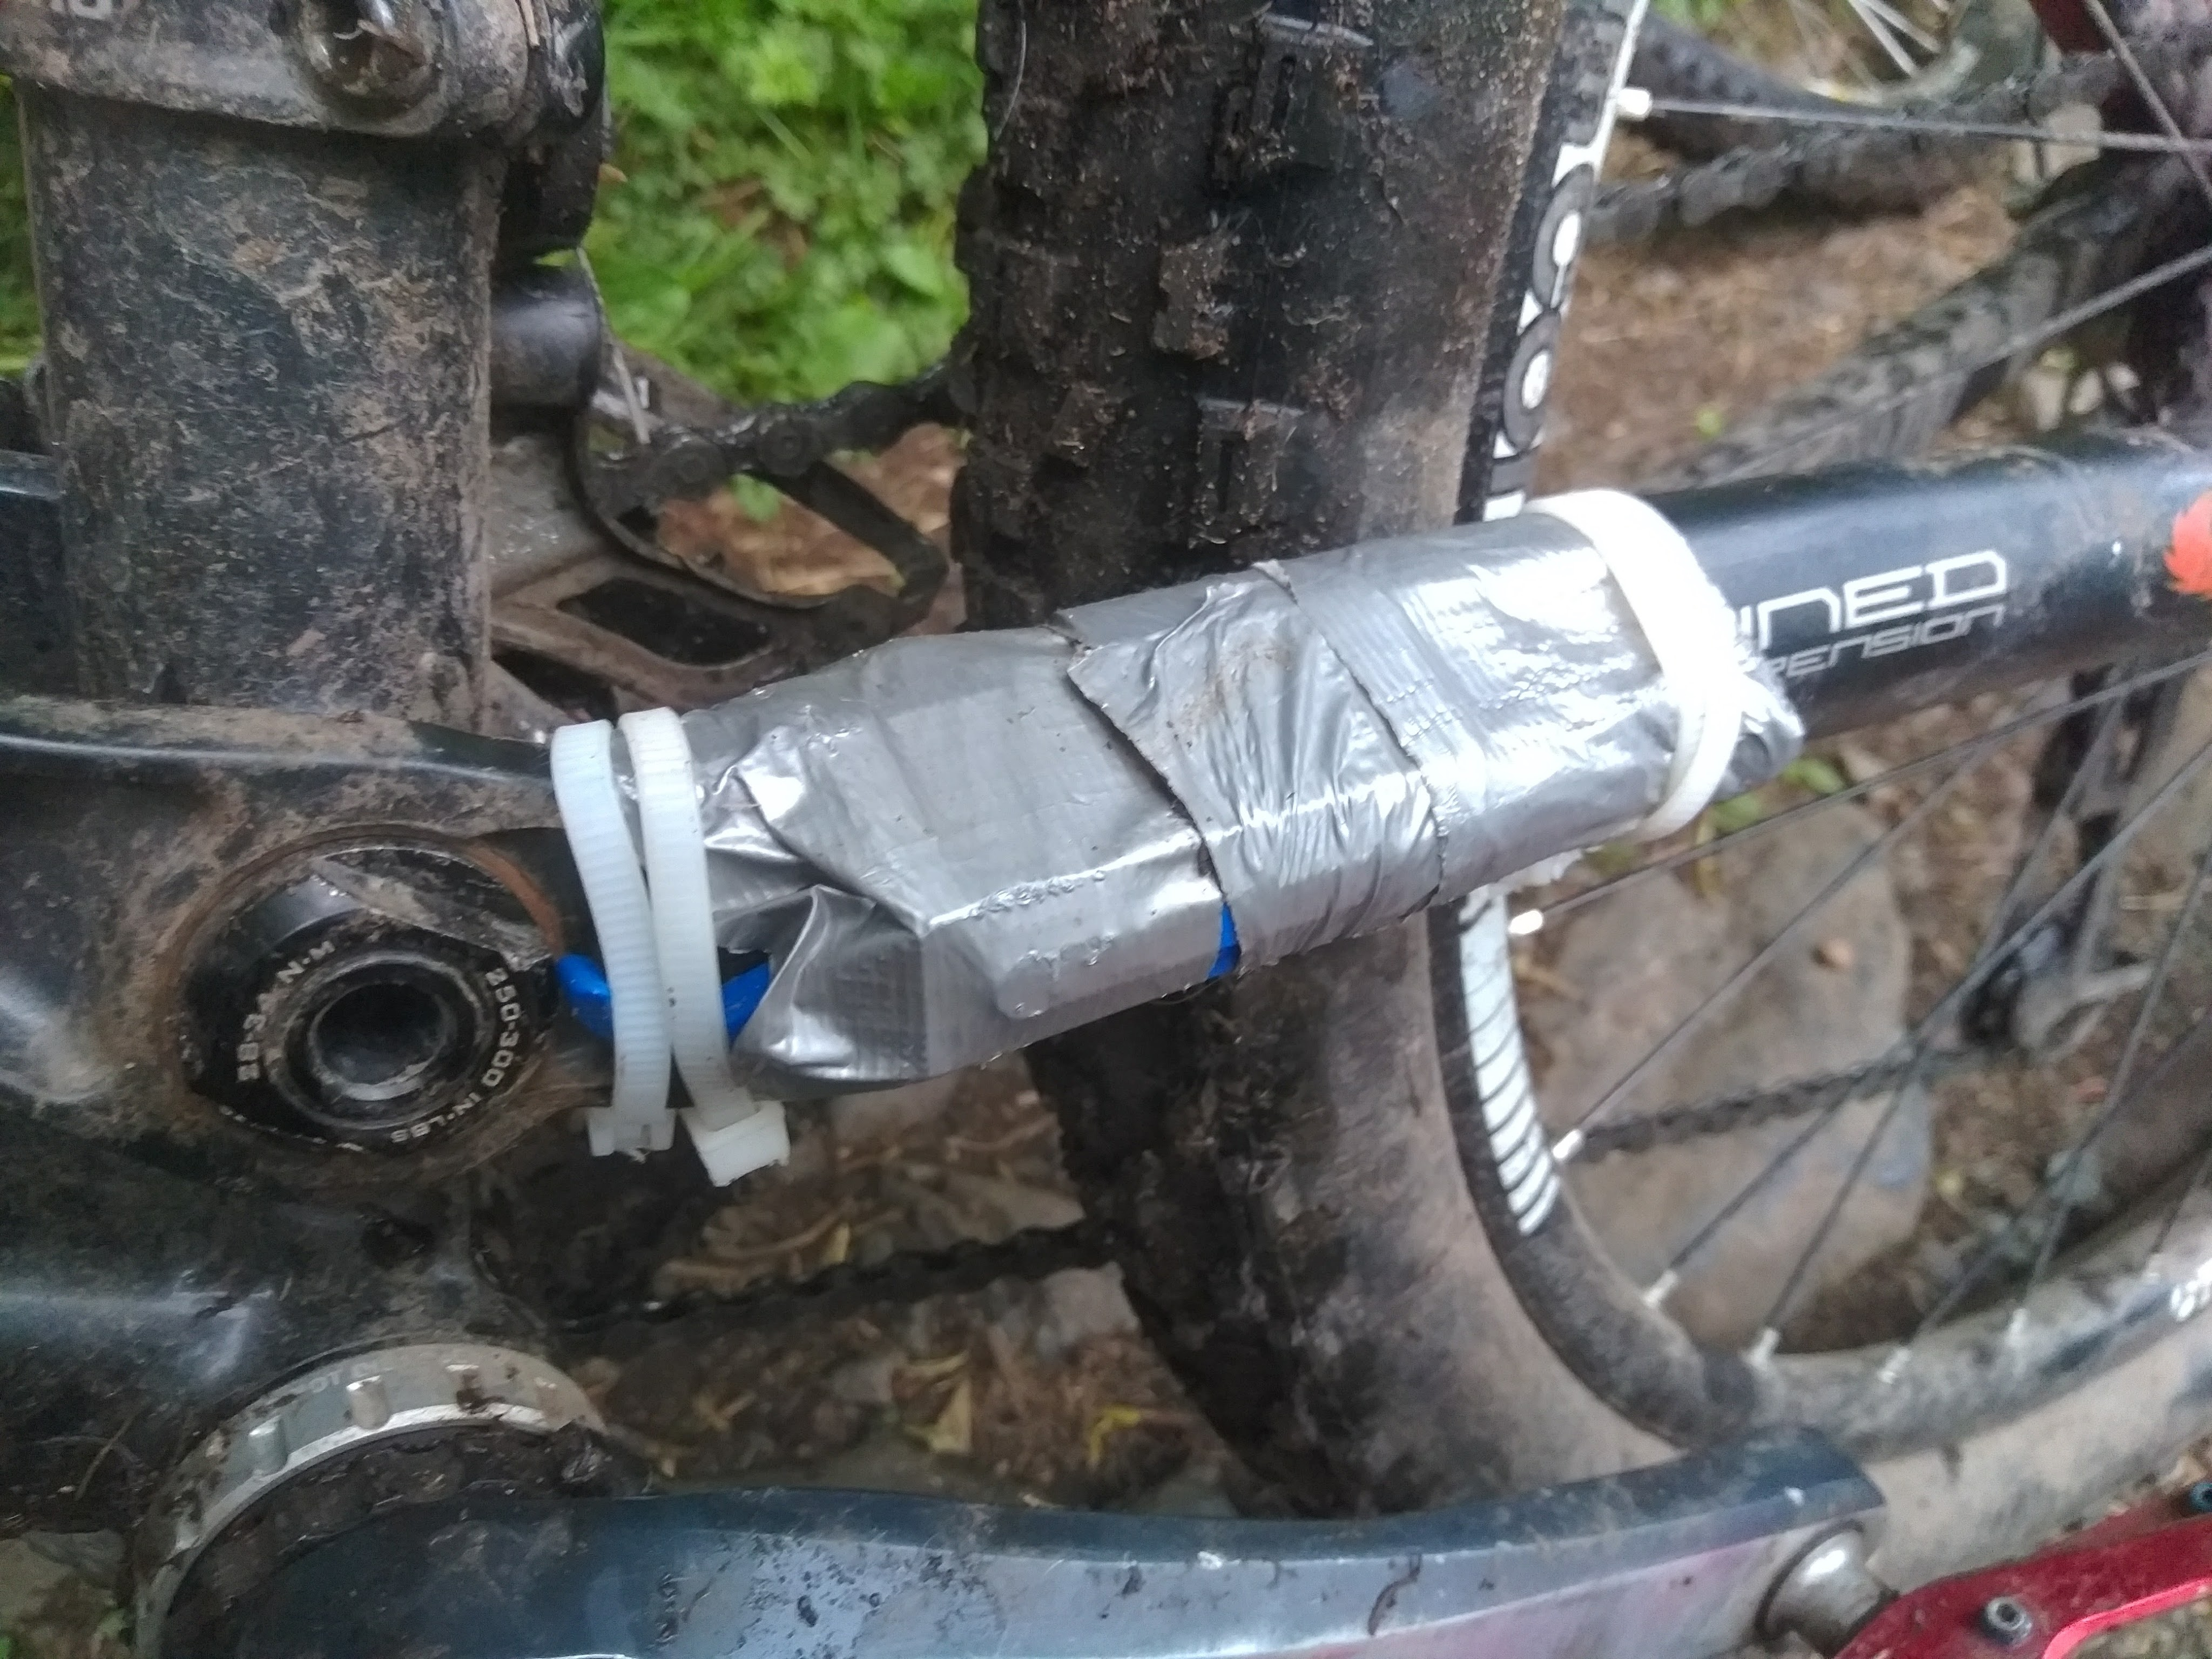 """Cracked chainstay """"get you home"""" - may not represent normal repair quality."""